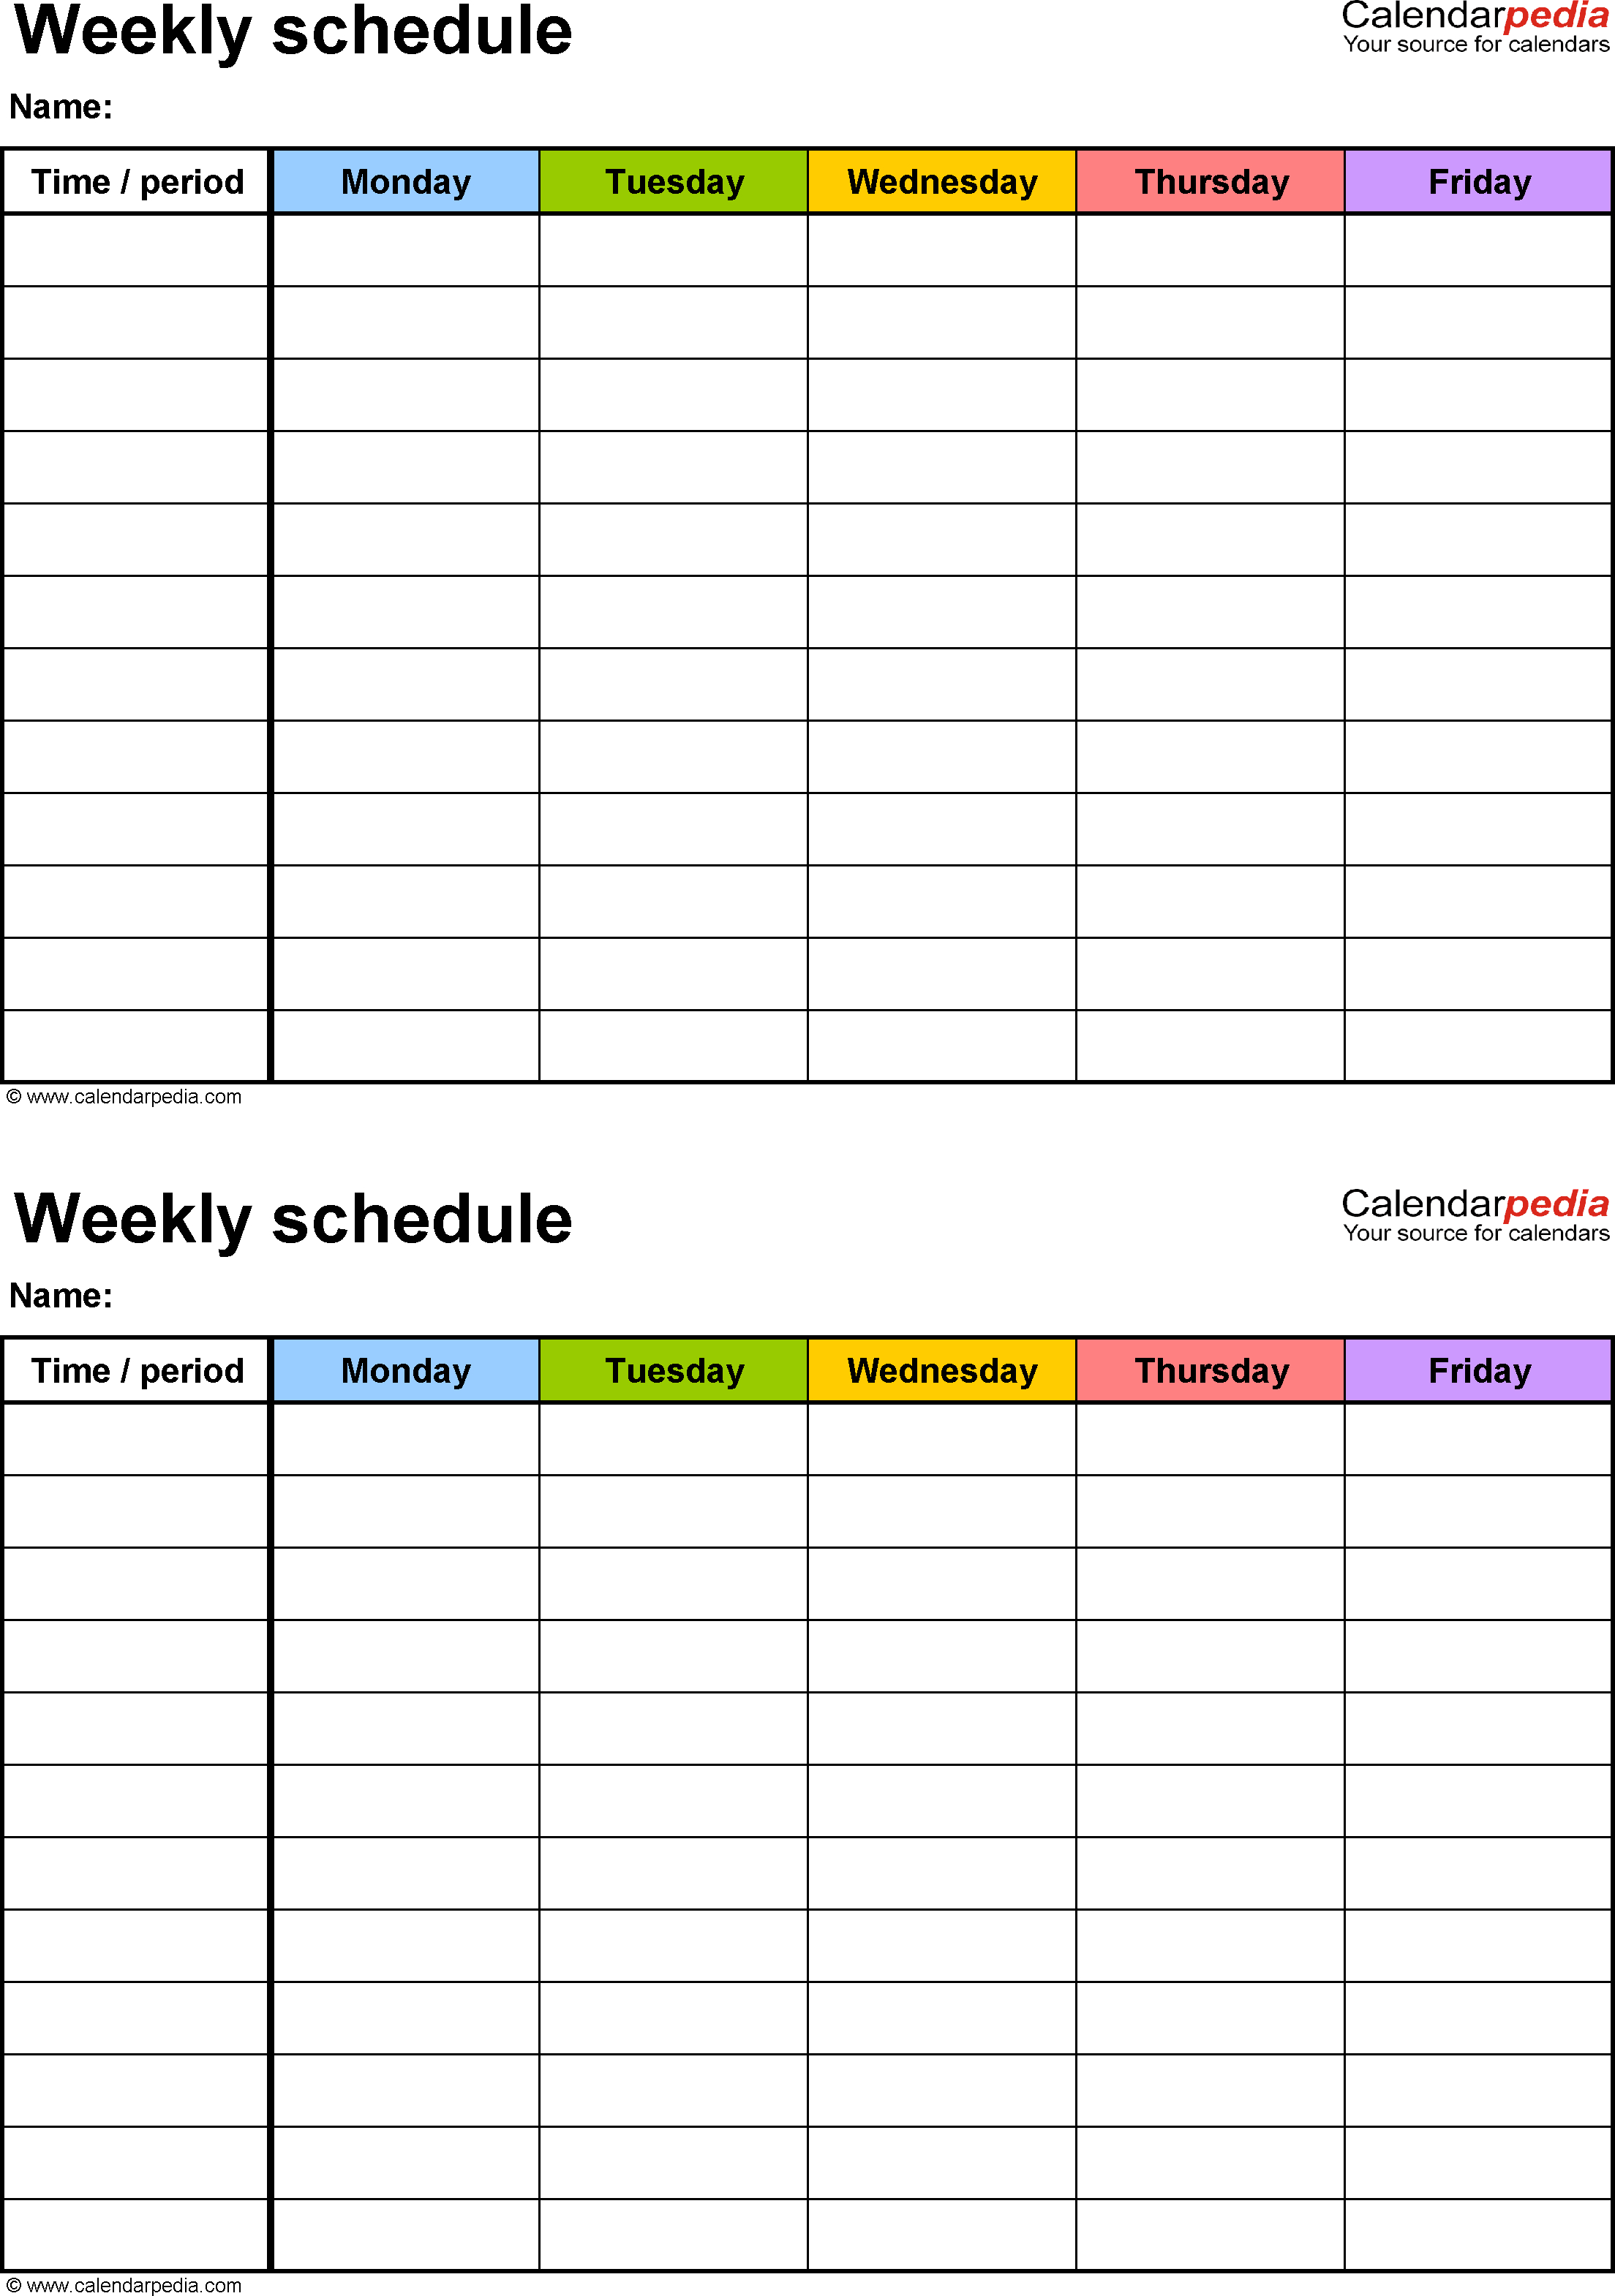 Free Weekly Schedule Templates For Pdf - 18 Templates with regard to Calendar Template Fillable Pdf